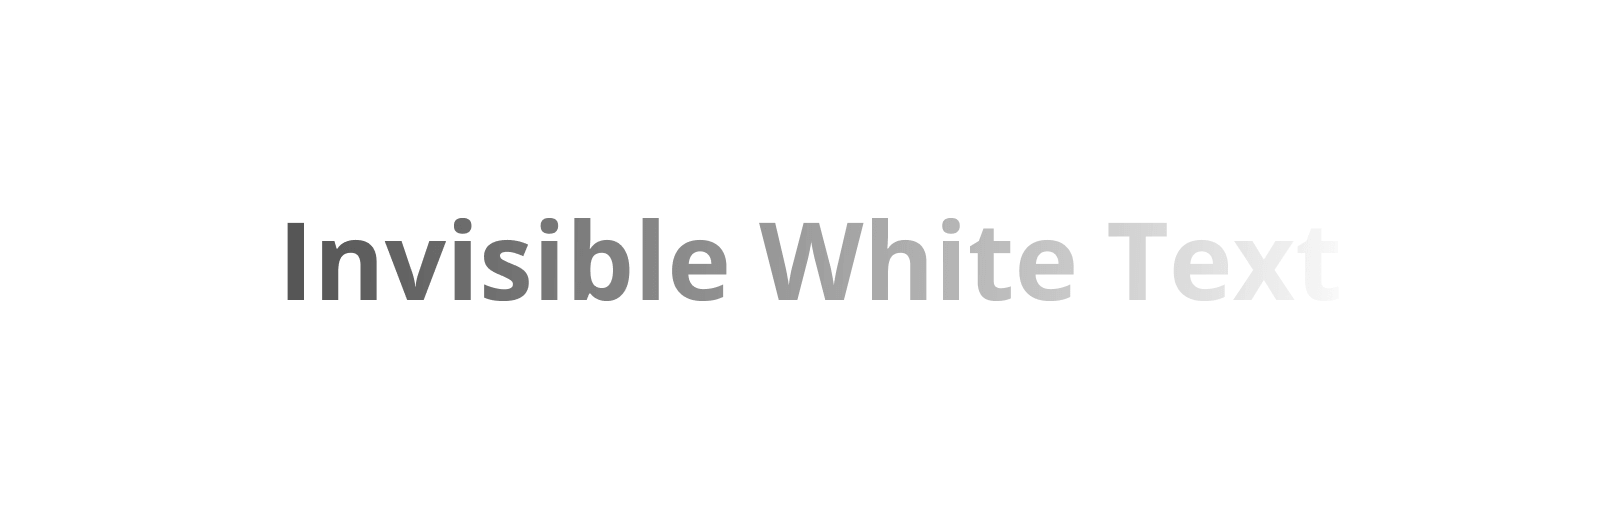 Invisible White Text